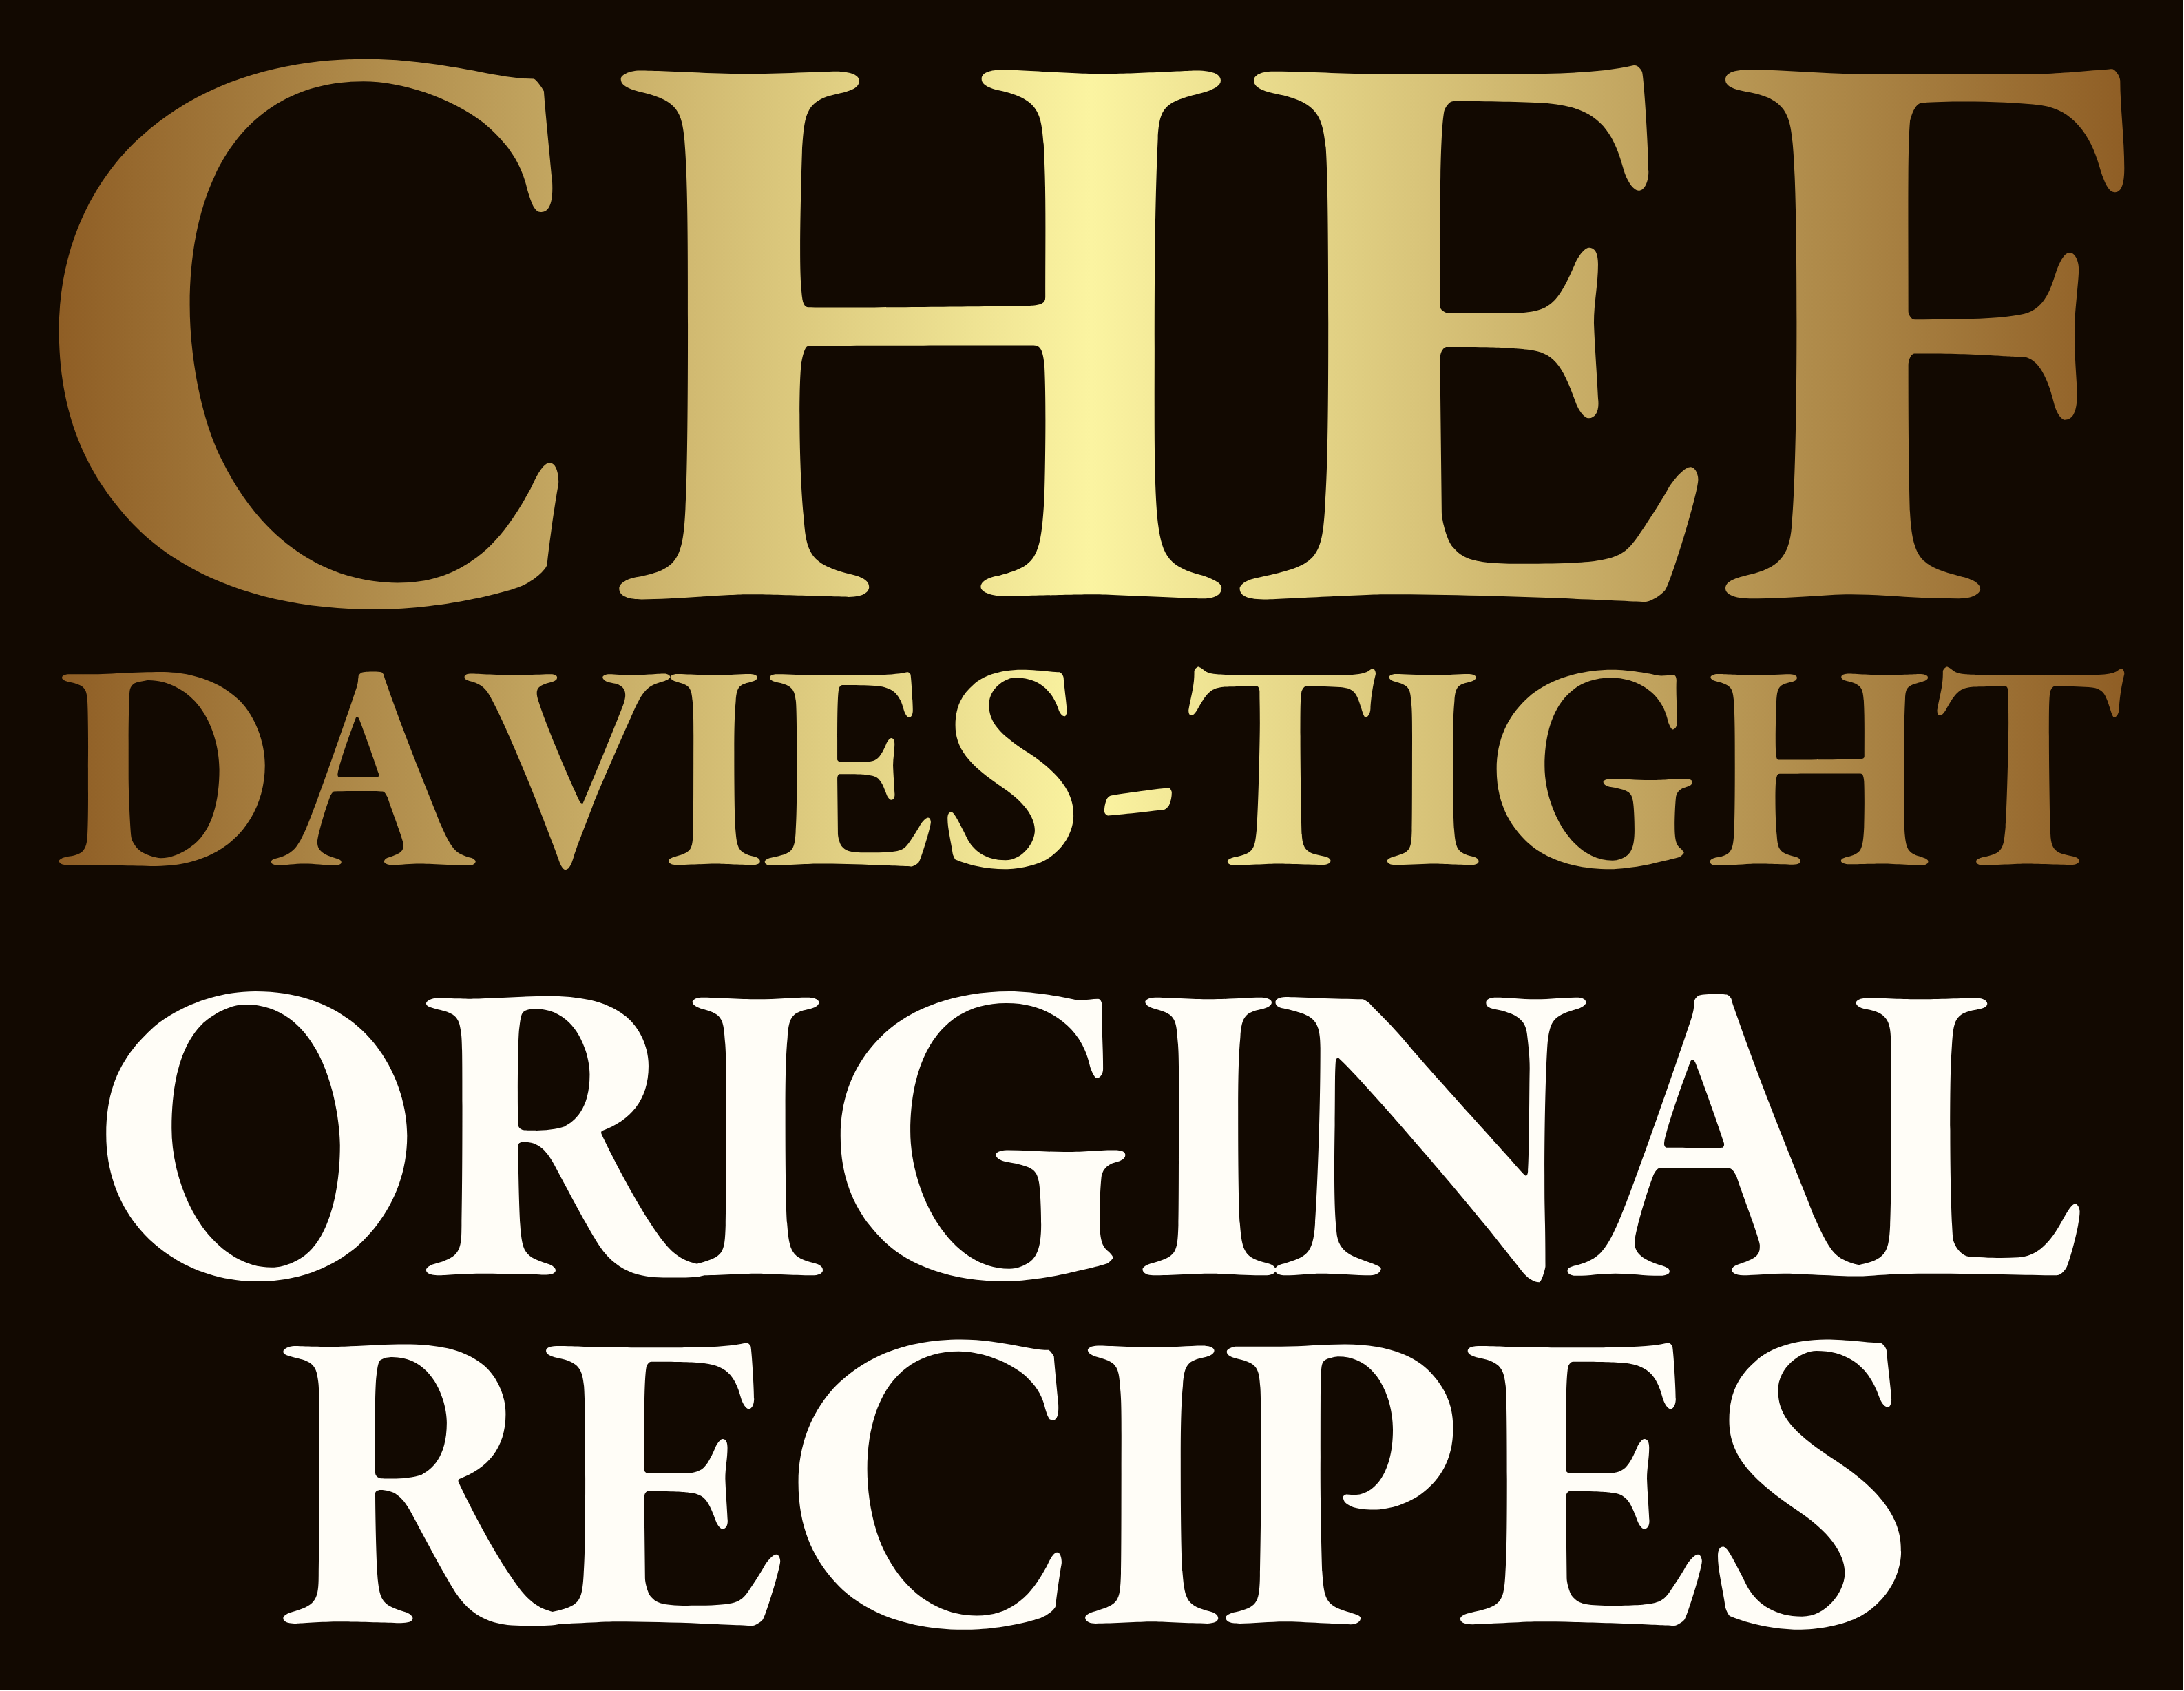 •CHEF DAVIES-TIGHT™•